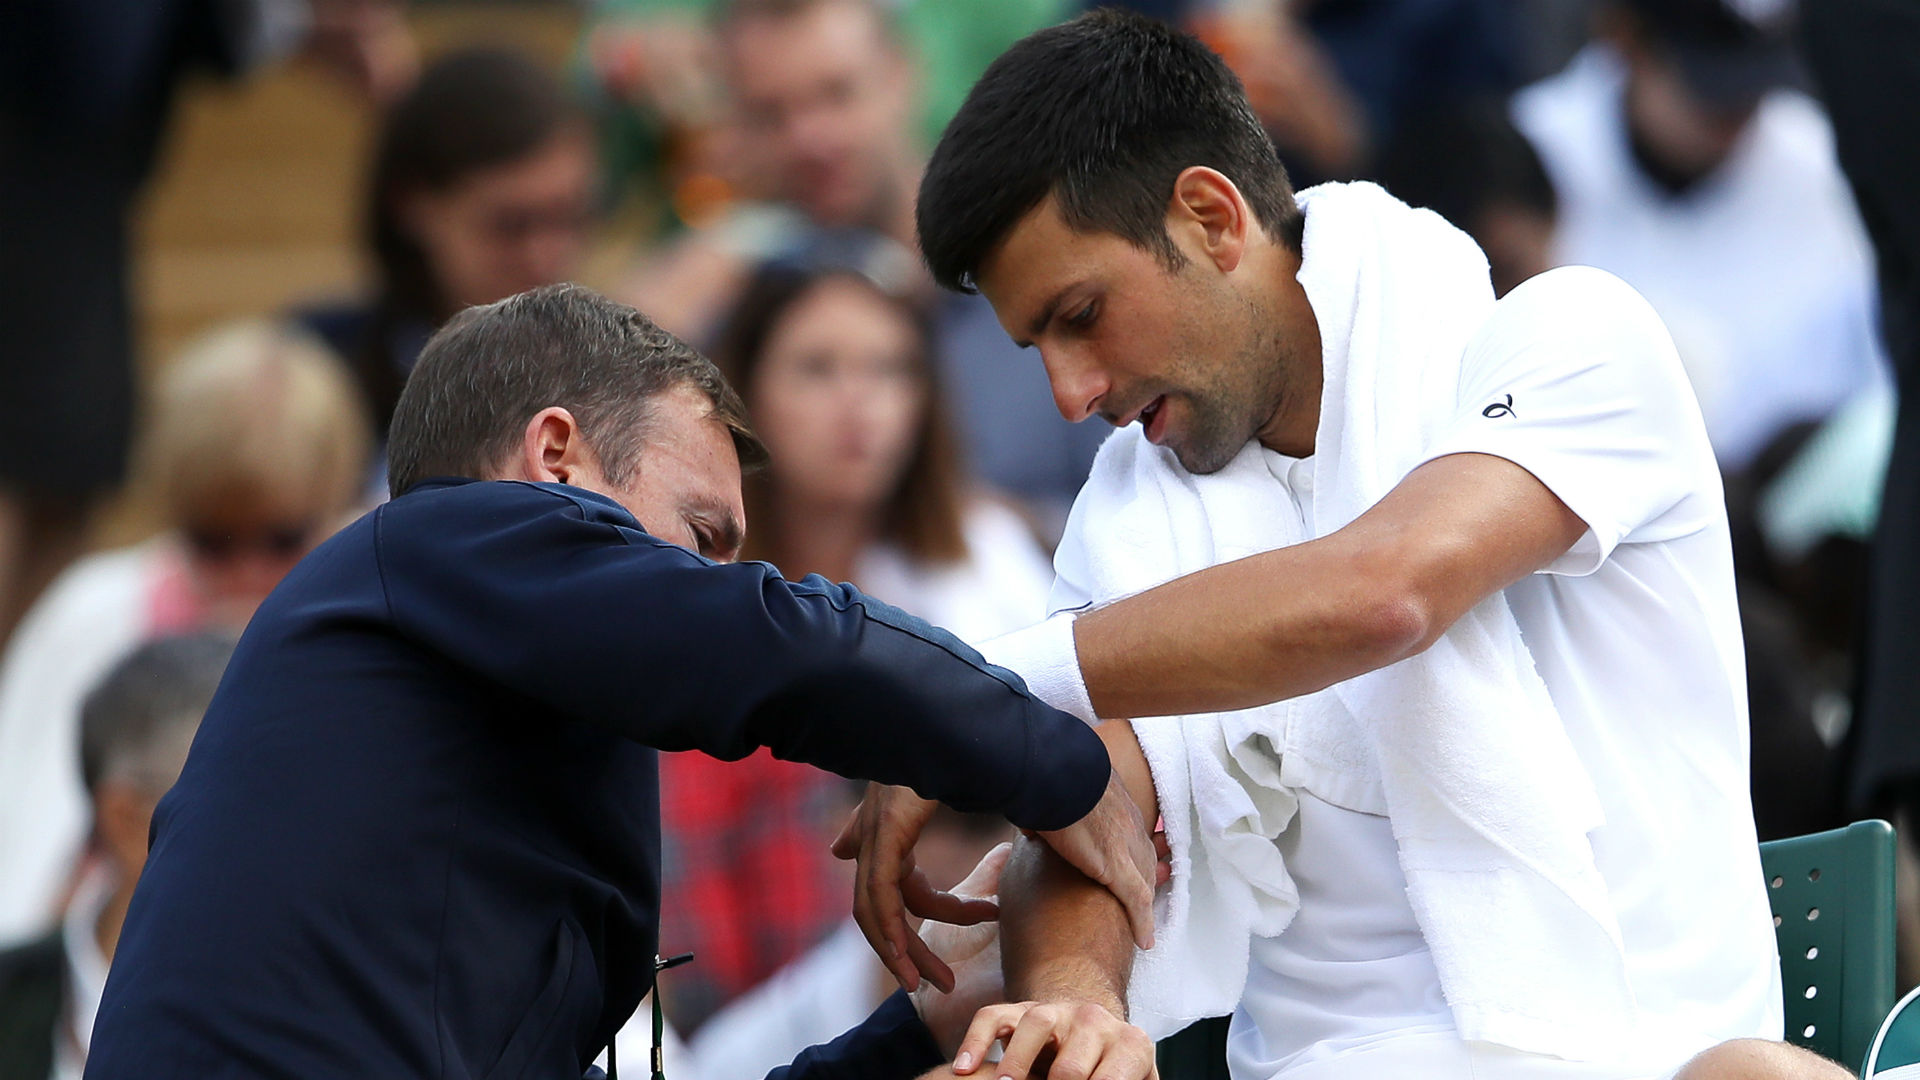 Wimbledon 2017 Novak Djokovic retires from Wimbledon quarterfinal